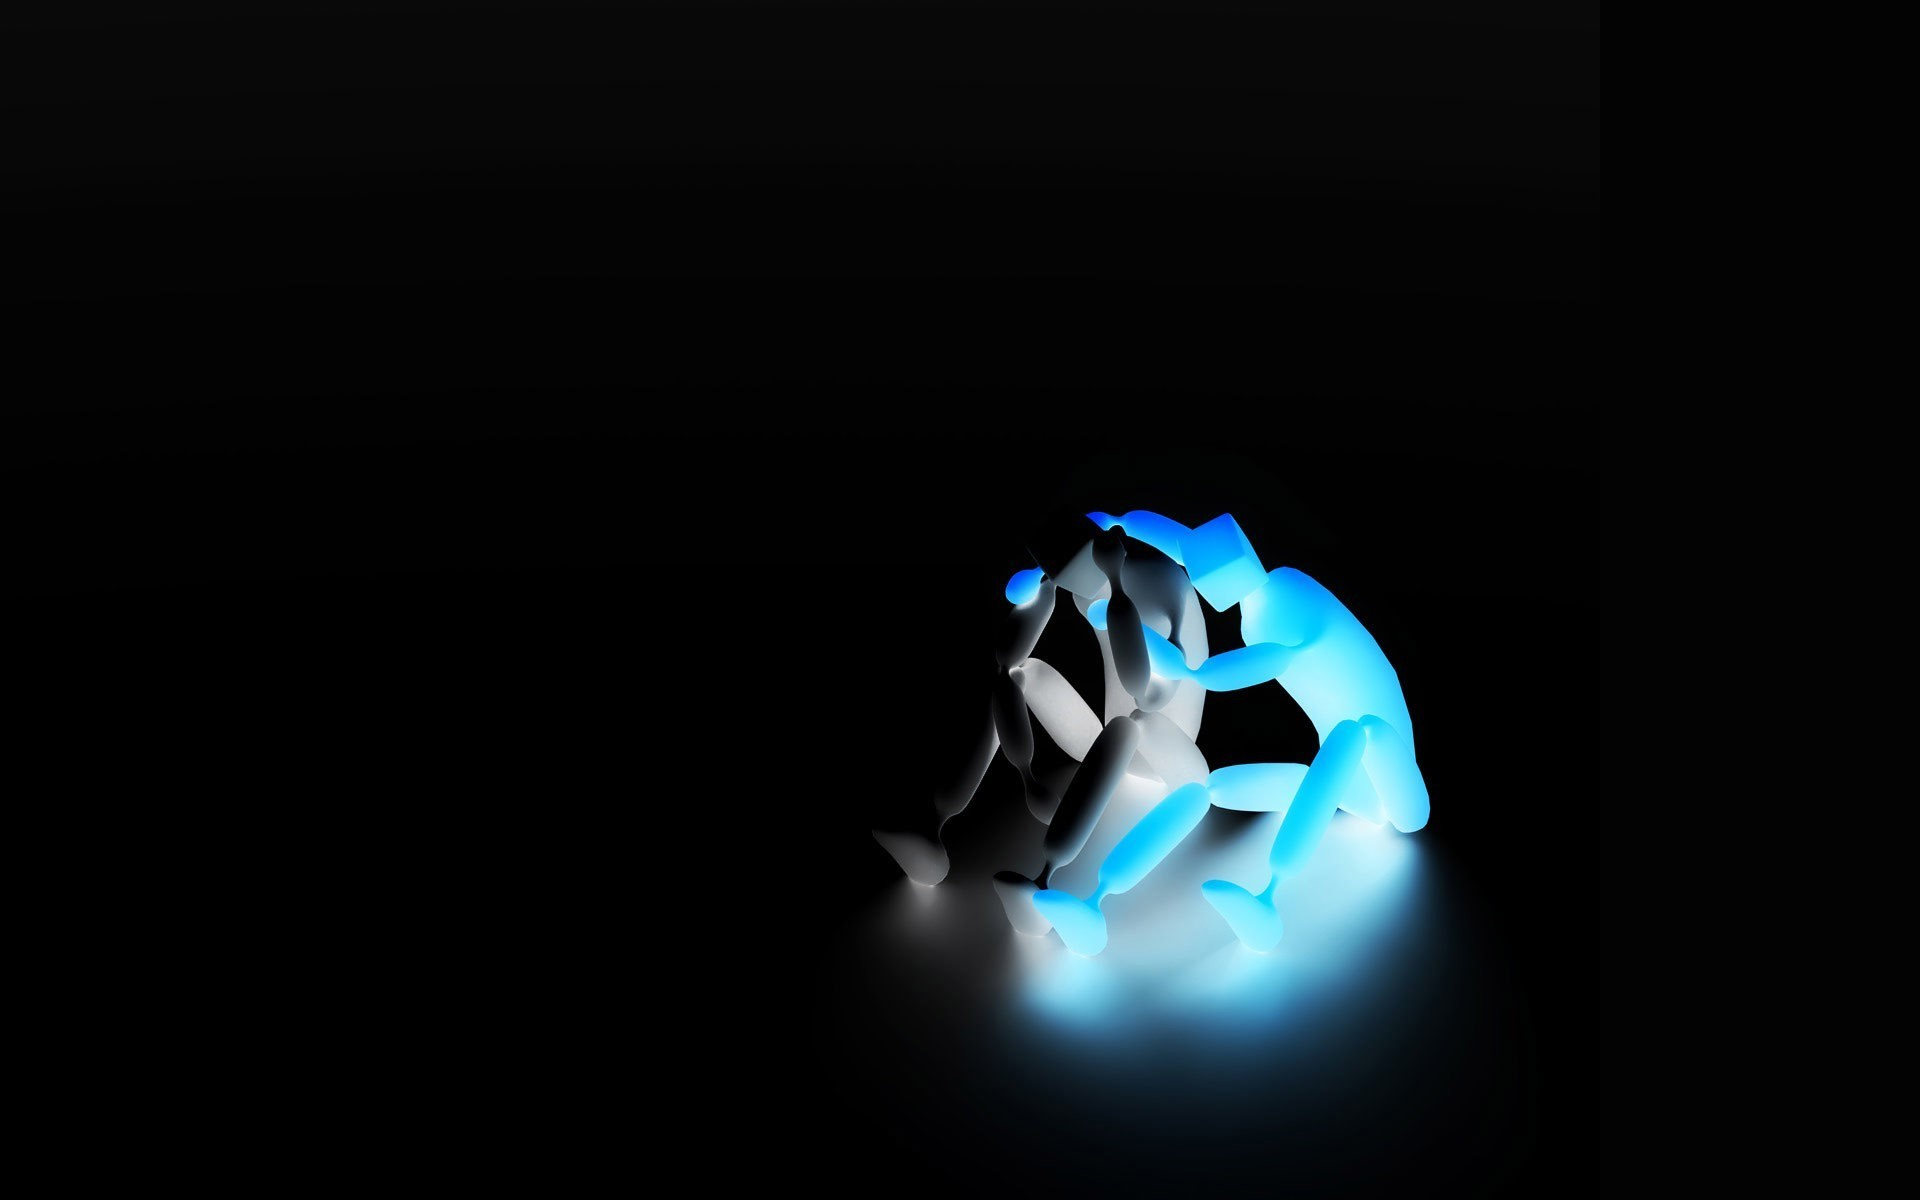 black and shining blue statue with black background HD Wallpapers 1920 x 1200